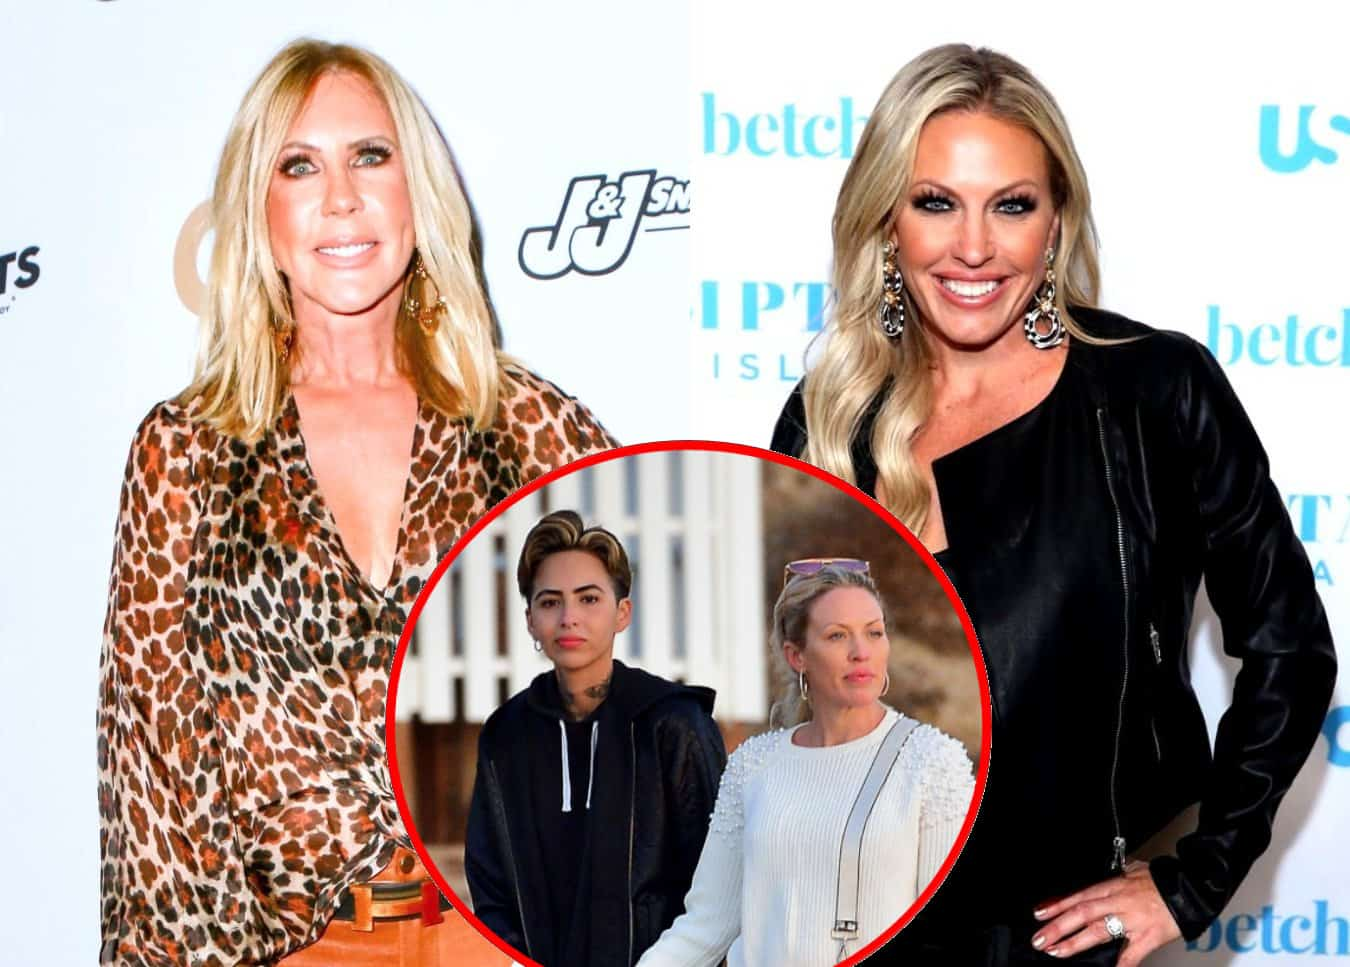 Vicki Gunvalson Shades Braunwyn Windham-Burke's Romance With Girlfriend Kris! See Her Shady Comment About Her Ex RHOC Cast Mate's Priorities